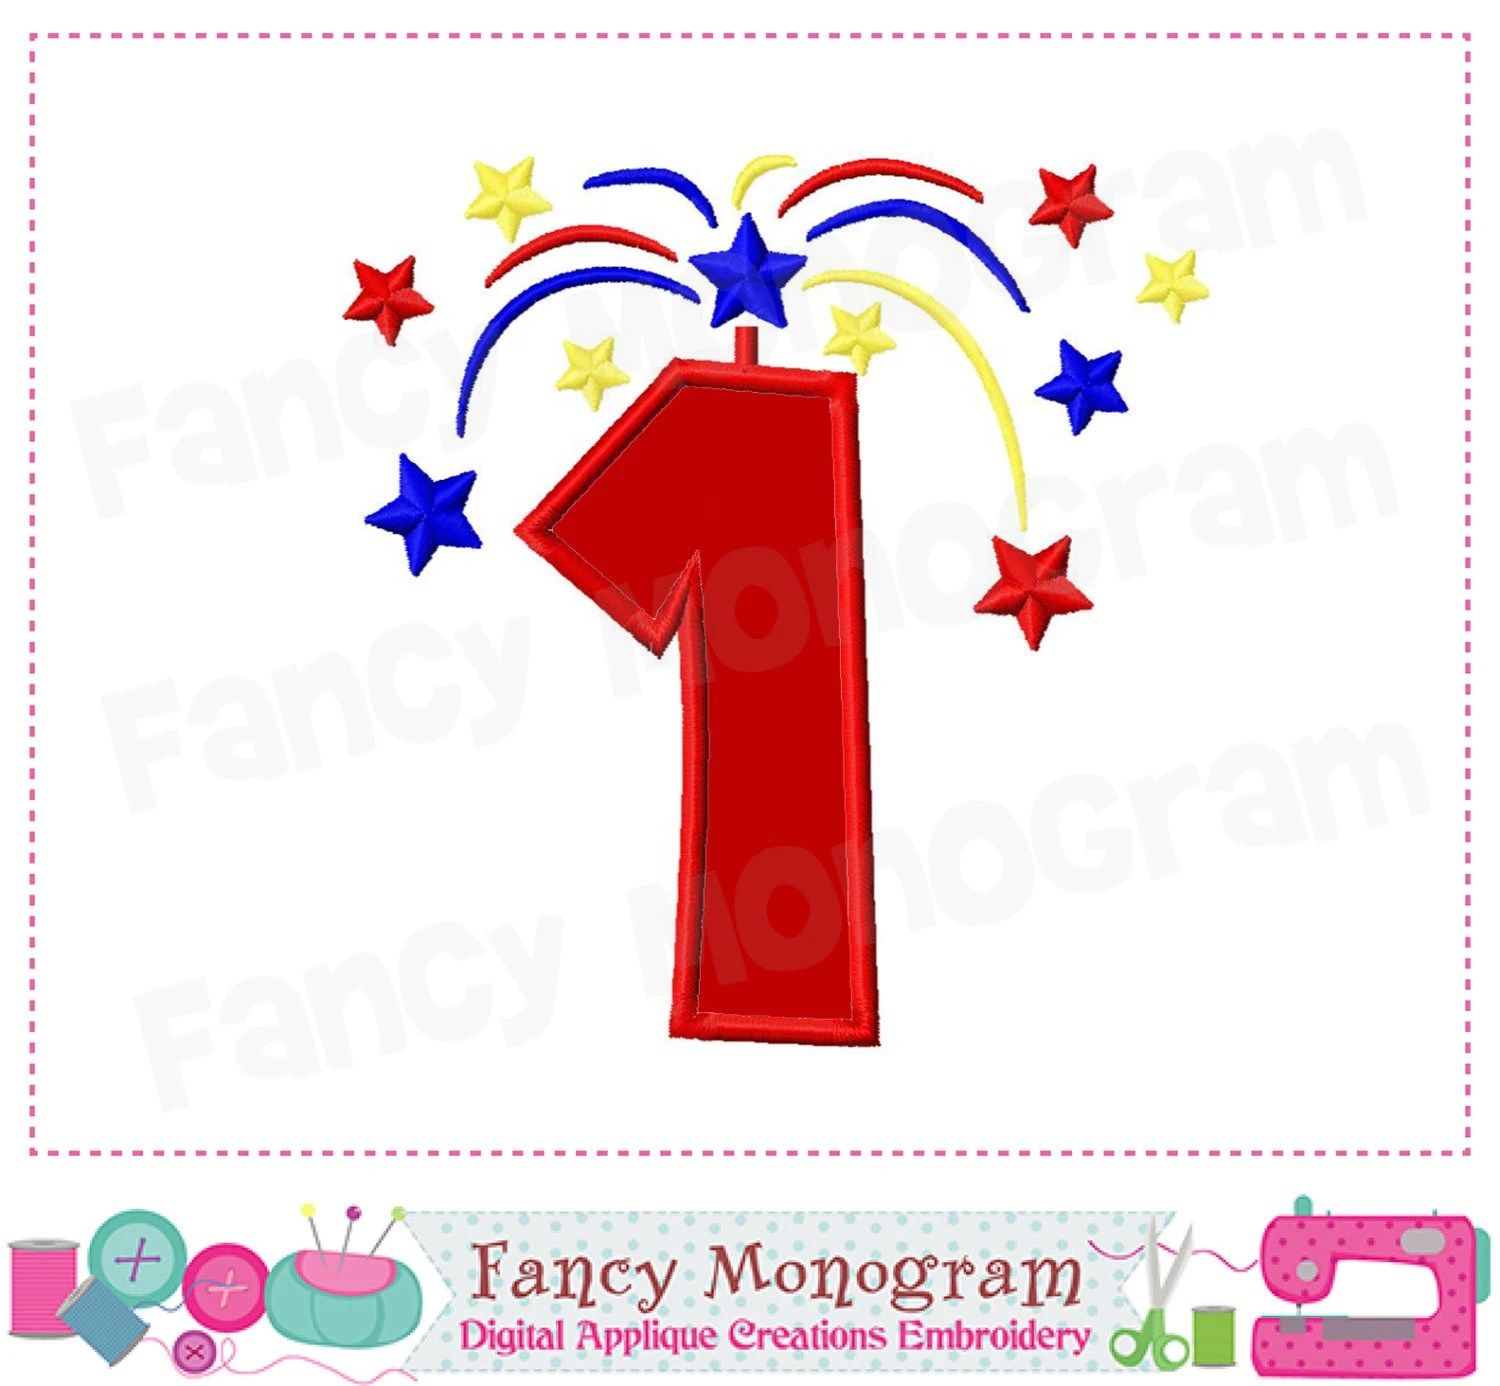 July 4th Number 1 Appliqueindependence Day Number 1